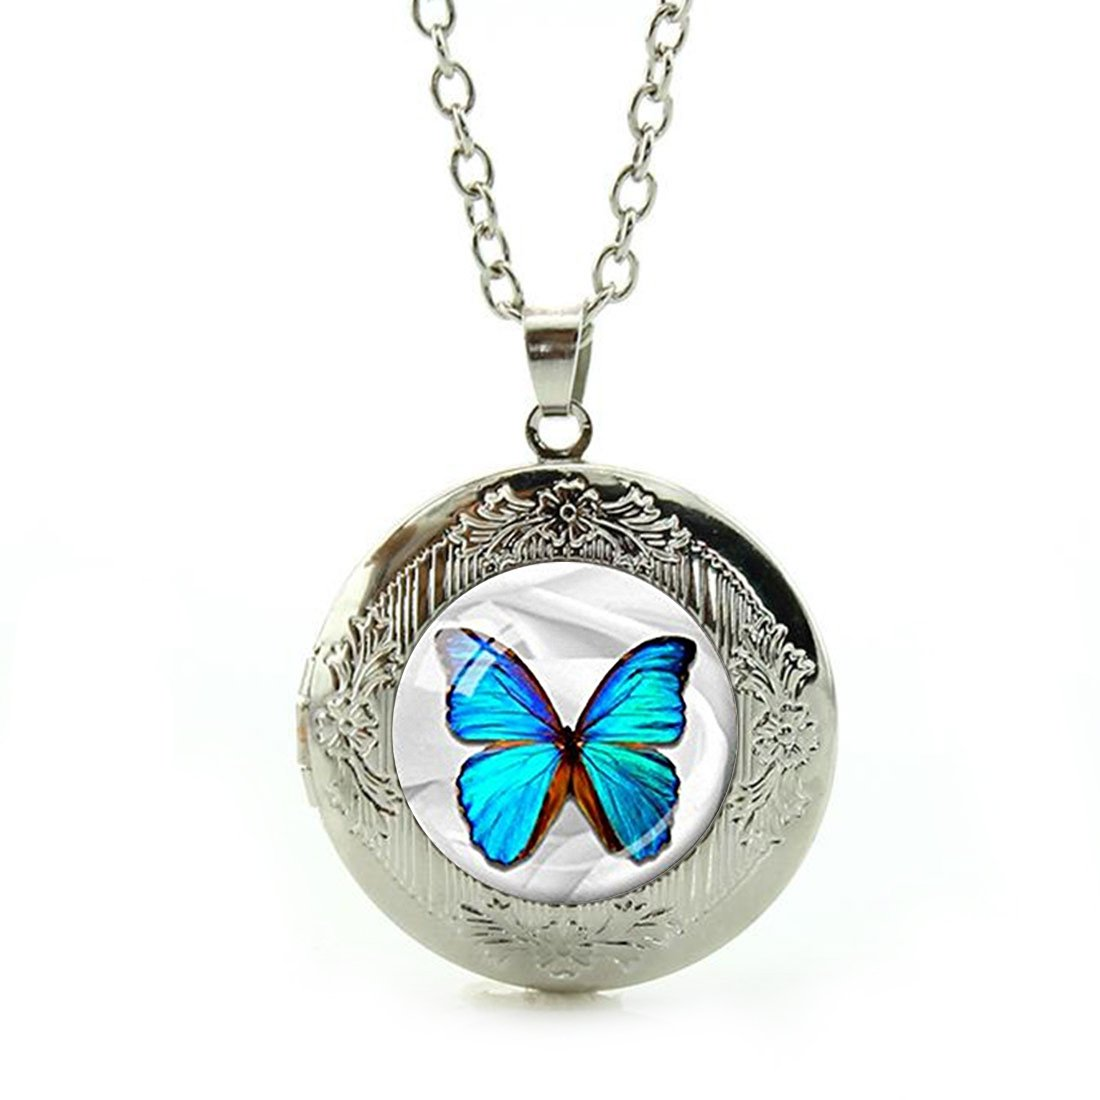 Women's Custom Locket Closure Pendant Necklace Morpho Butterfly Blue Butterfly Included Free Silver Chain, Best Gift Set